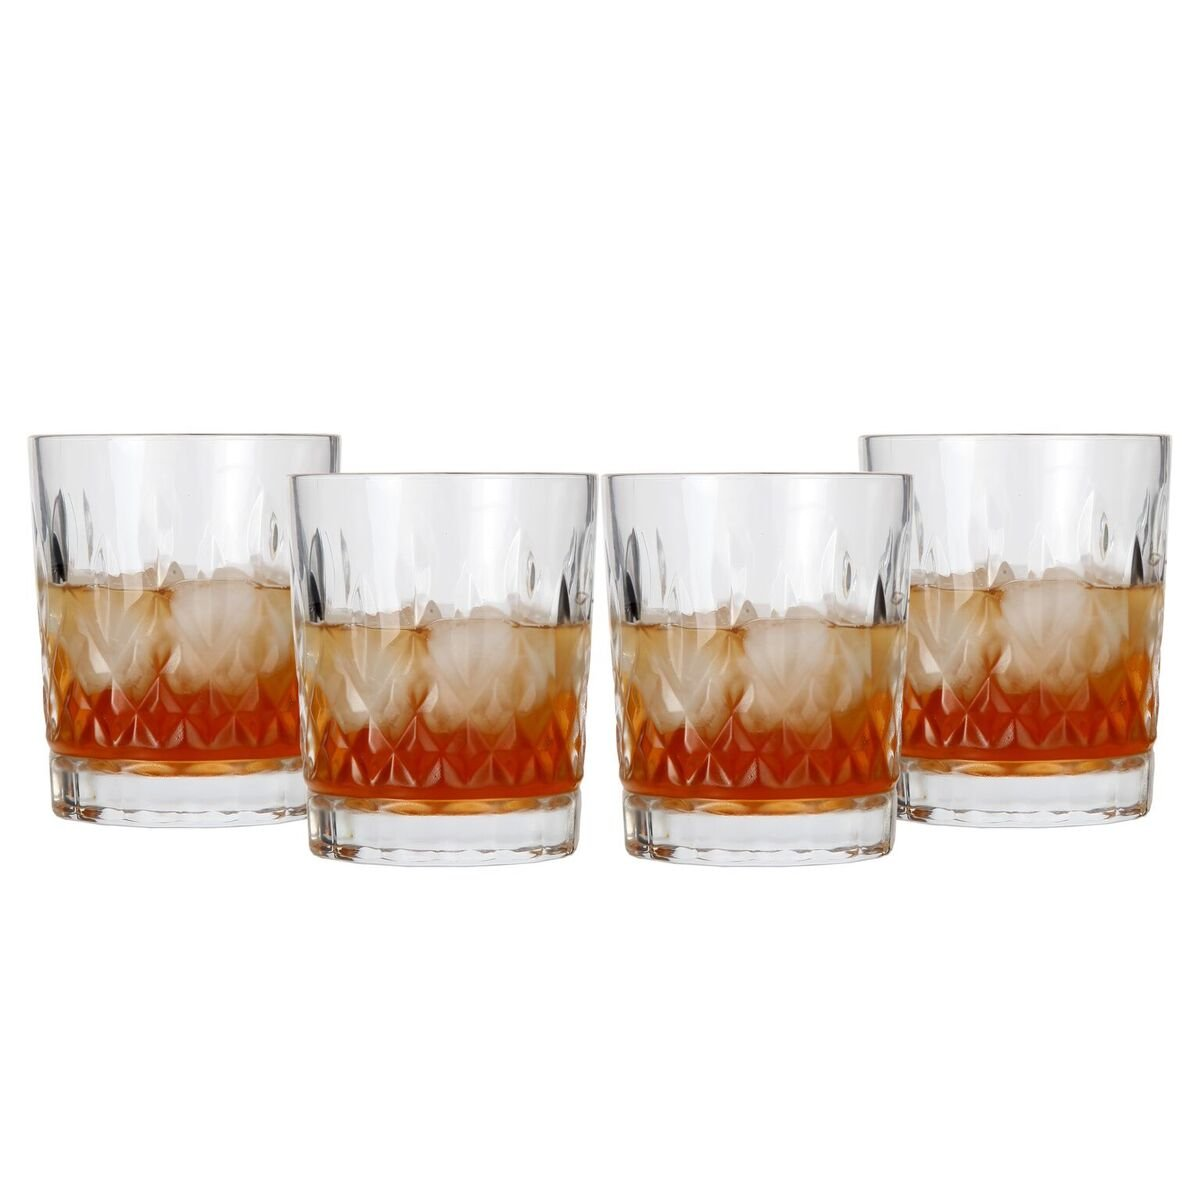 ideal for Whiskey Lilys Home Old Fashioned Whiskey Glasses Lily/'s Home SW623 Bourbon 11oz each, Set of 2 or Cocktails